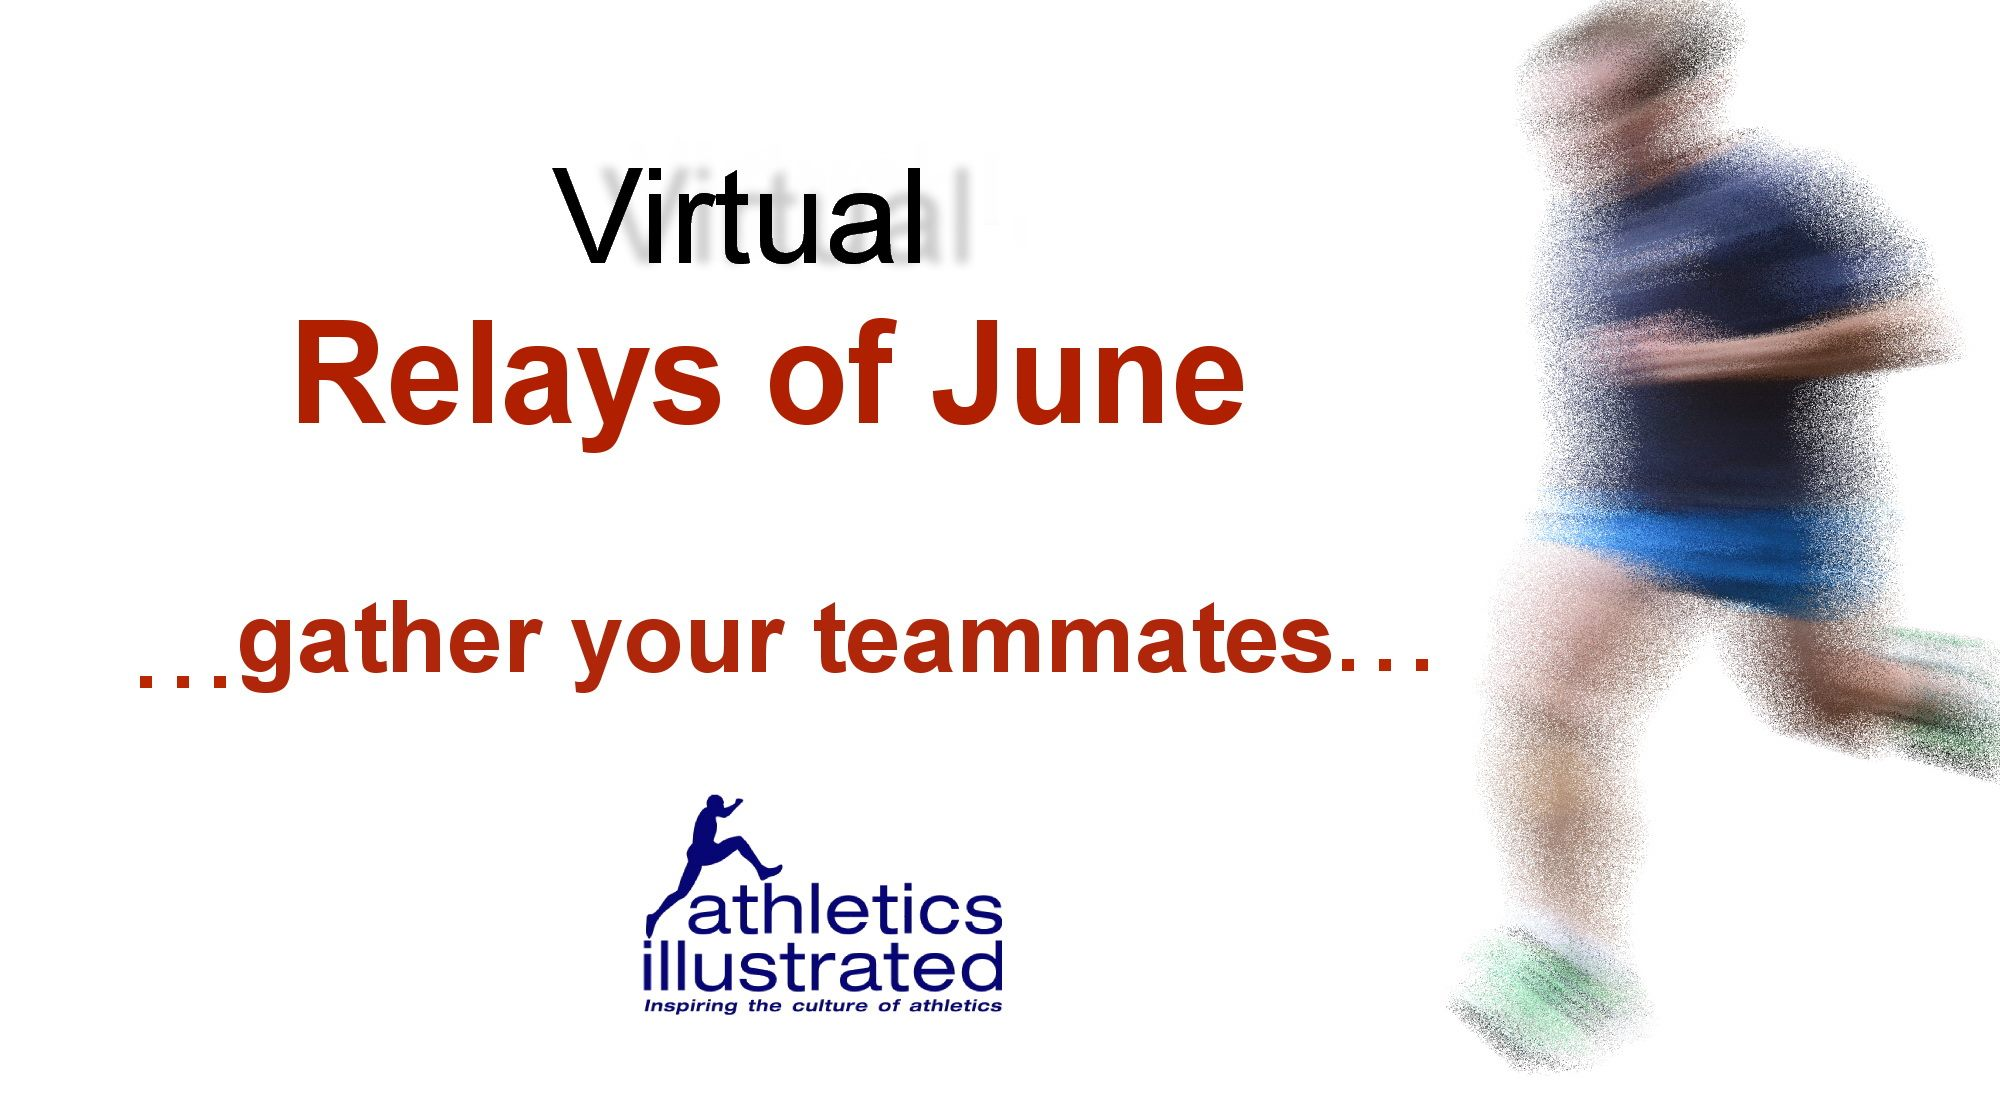 https://athleticsillustrated.com/race-5k-virtual-relays-of-june/